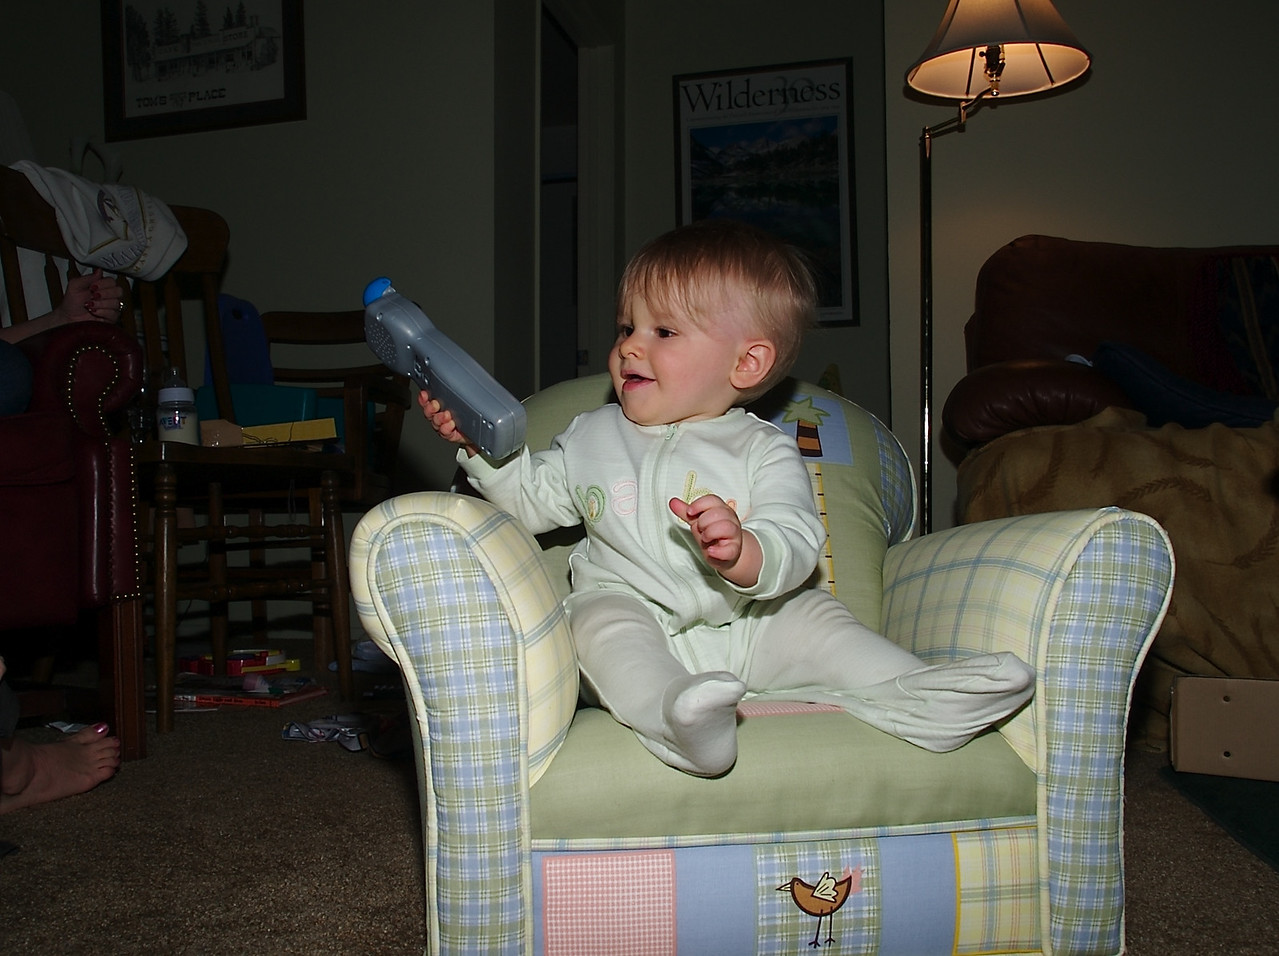 Here I am with my remote